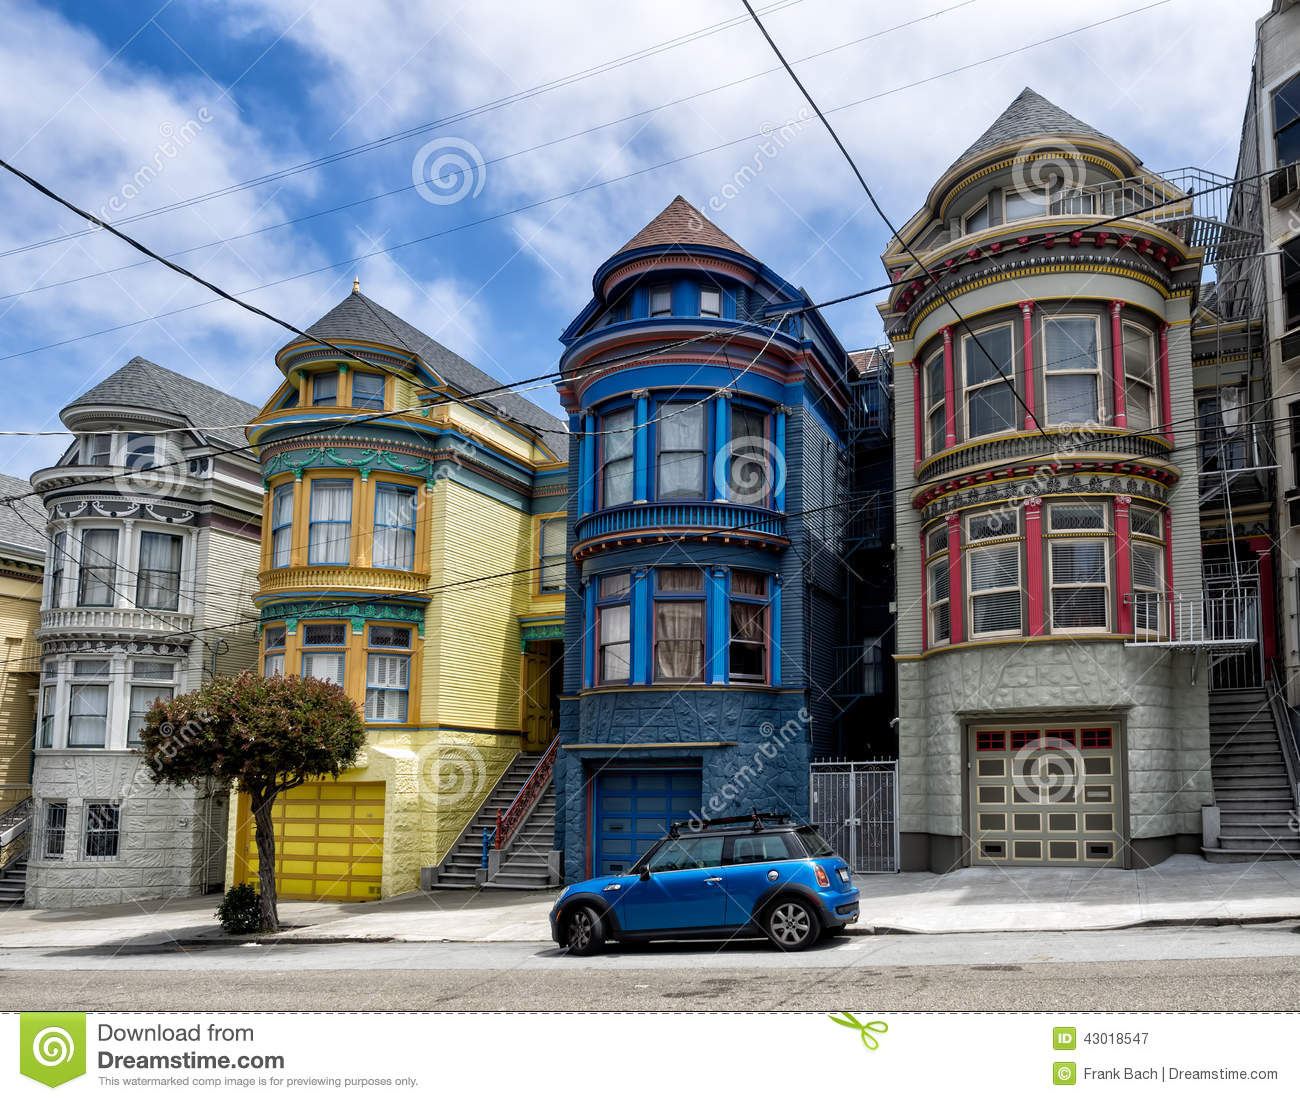 Painted ladies victorian houses in san francisco stock for Houses in san francisco